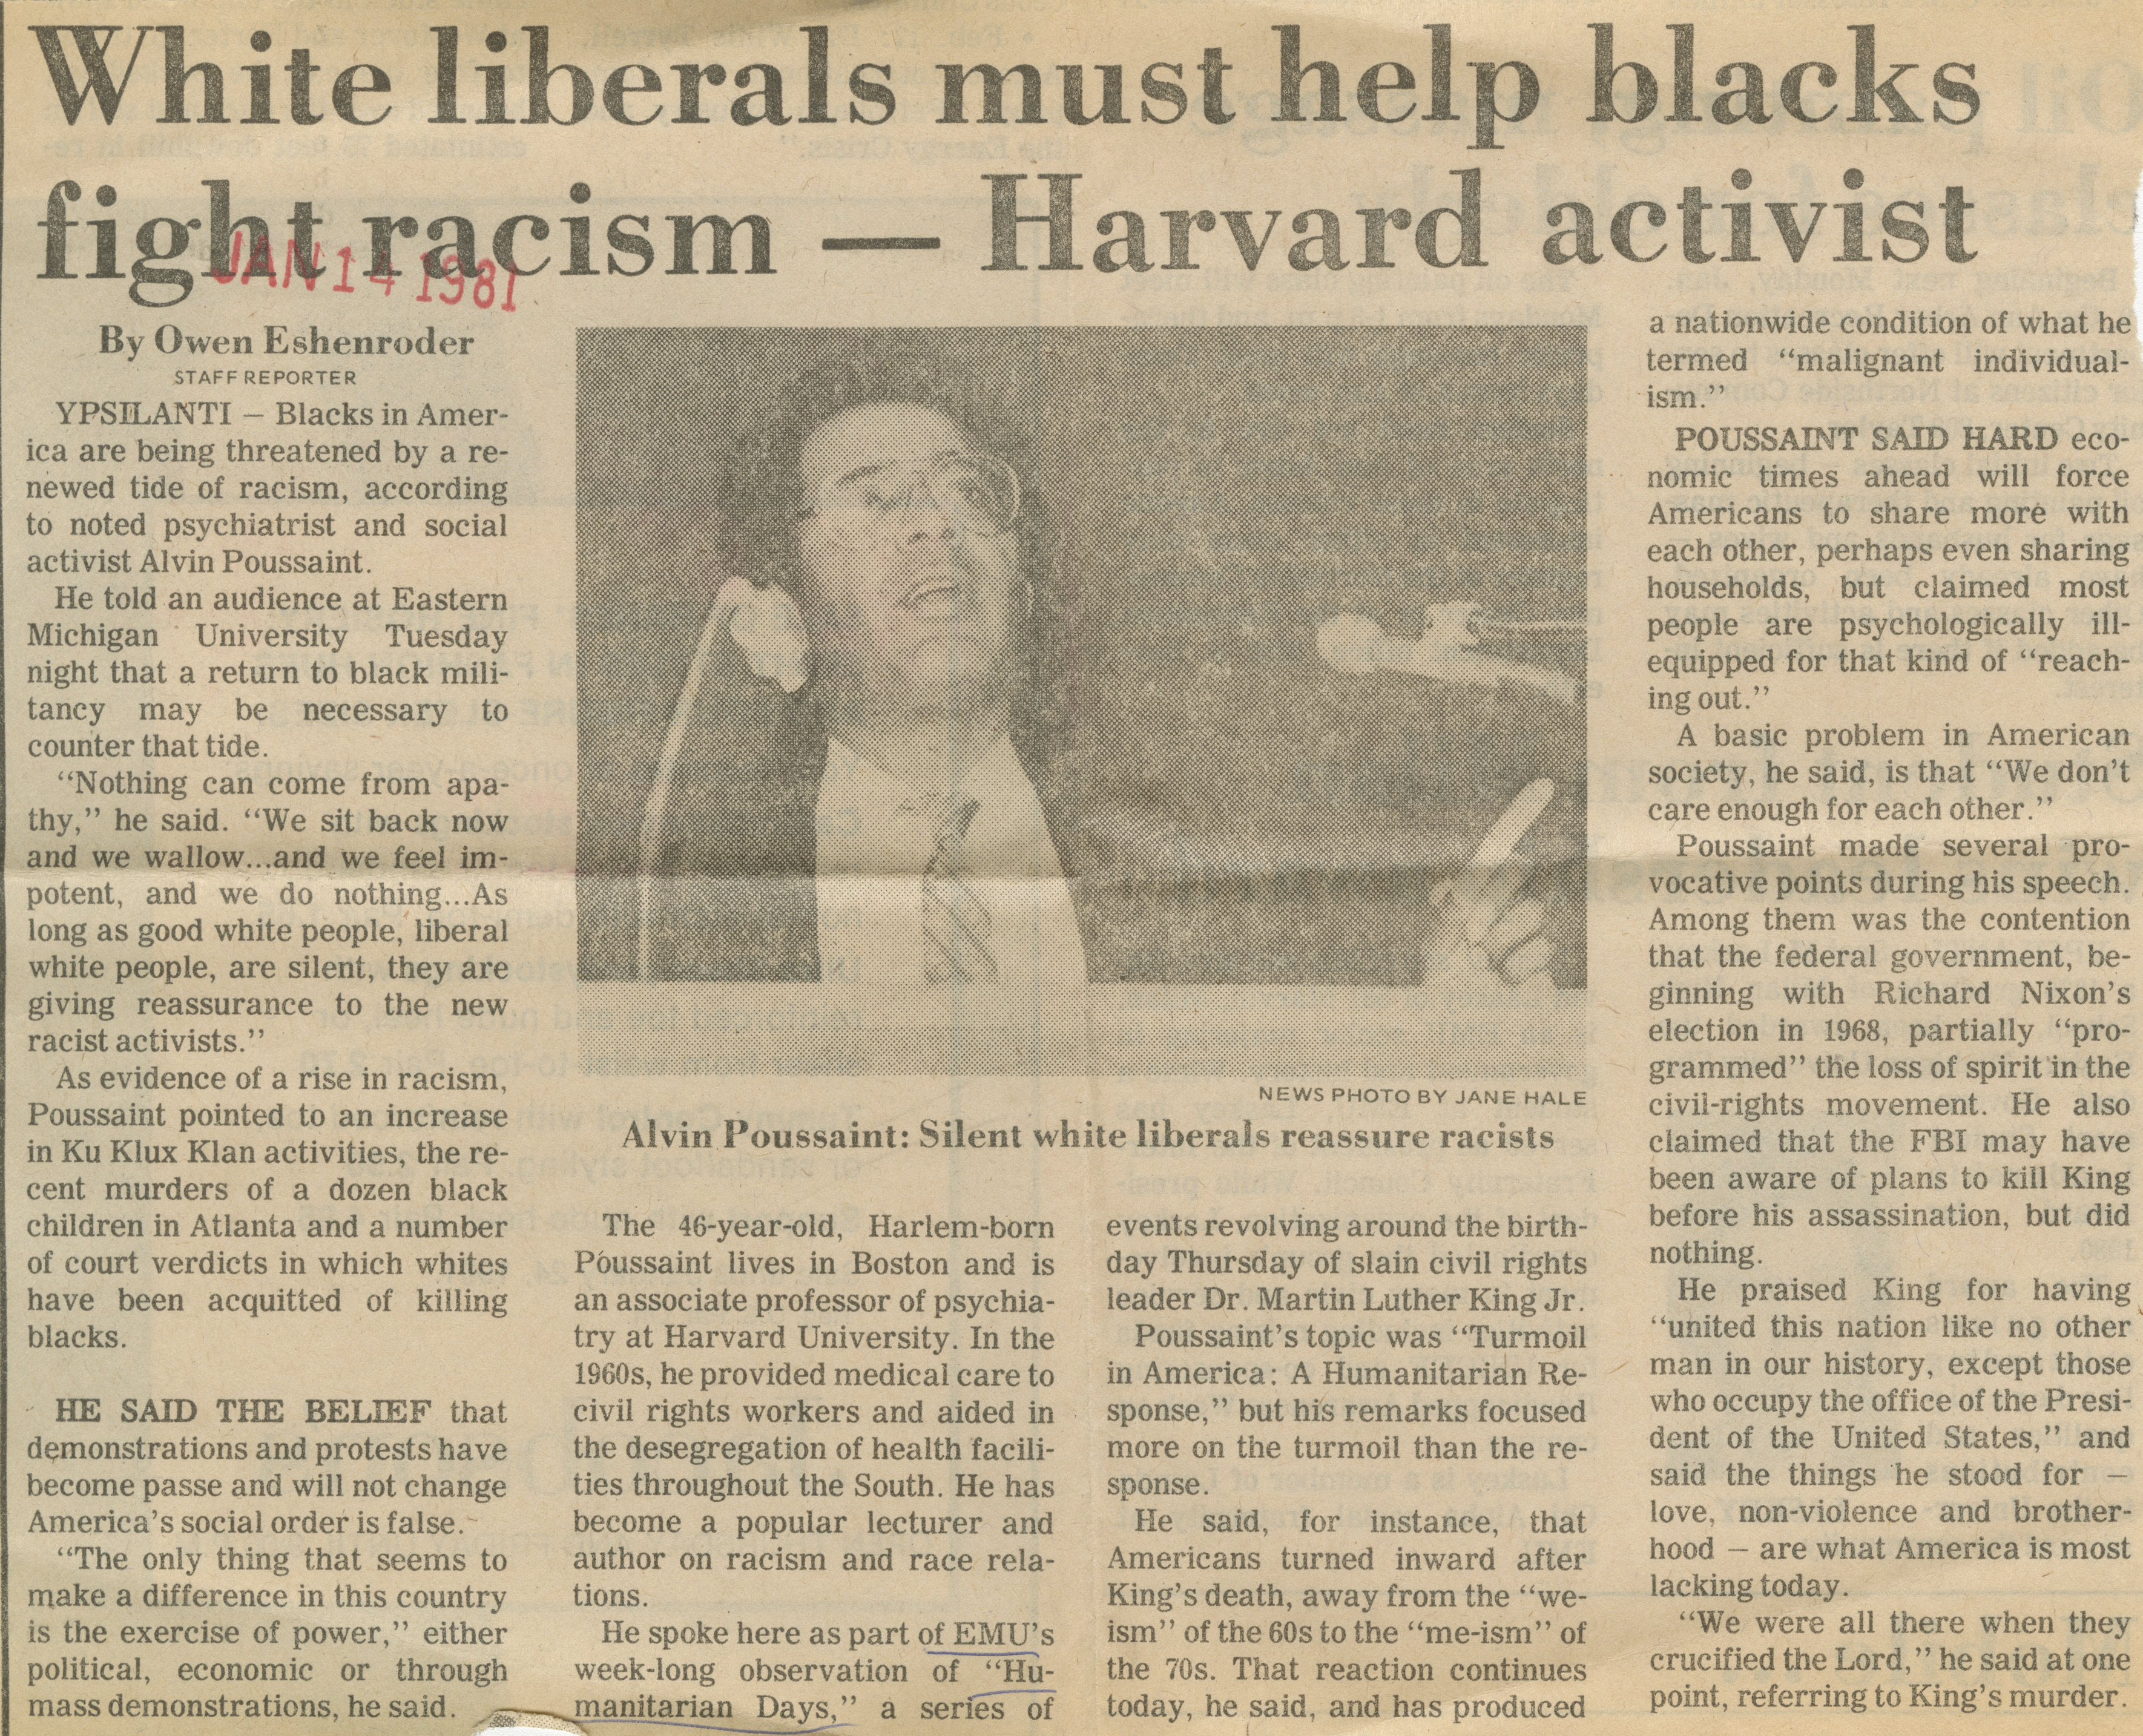 White liberals must help blacks fight racism - Harvard activist image